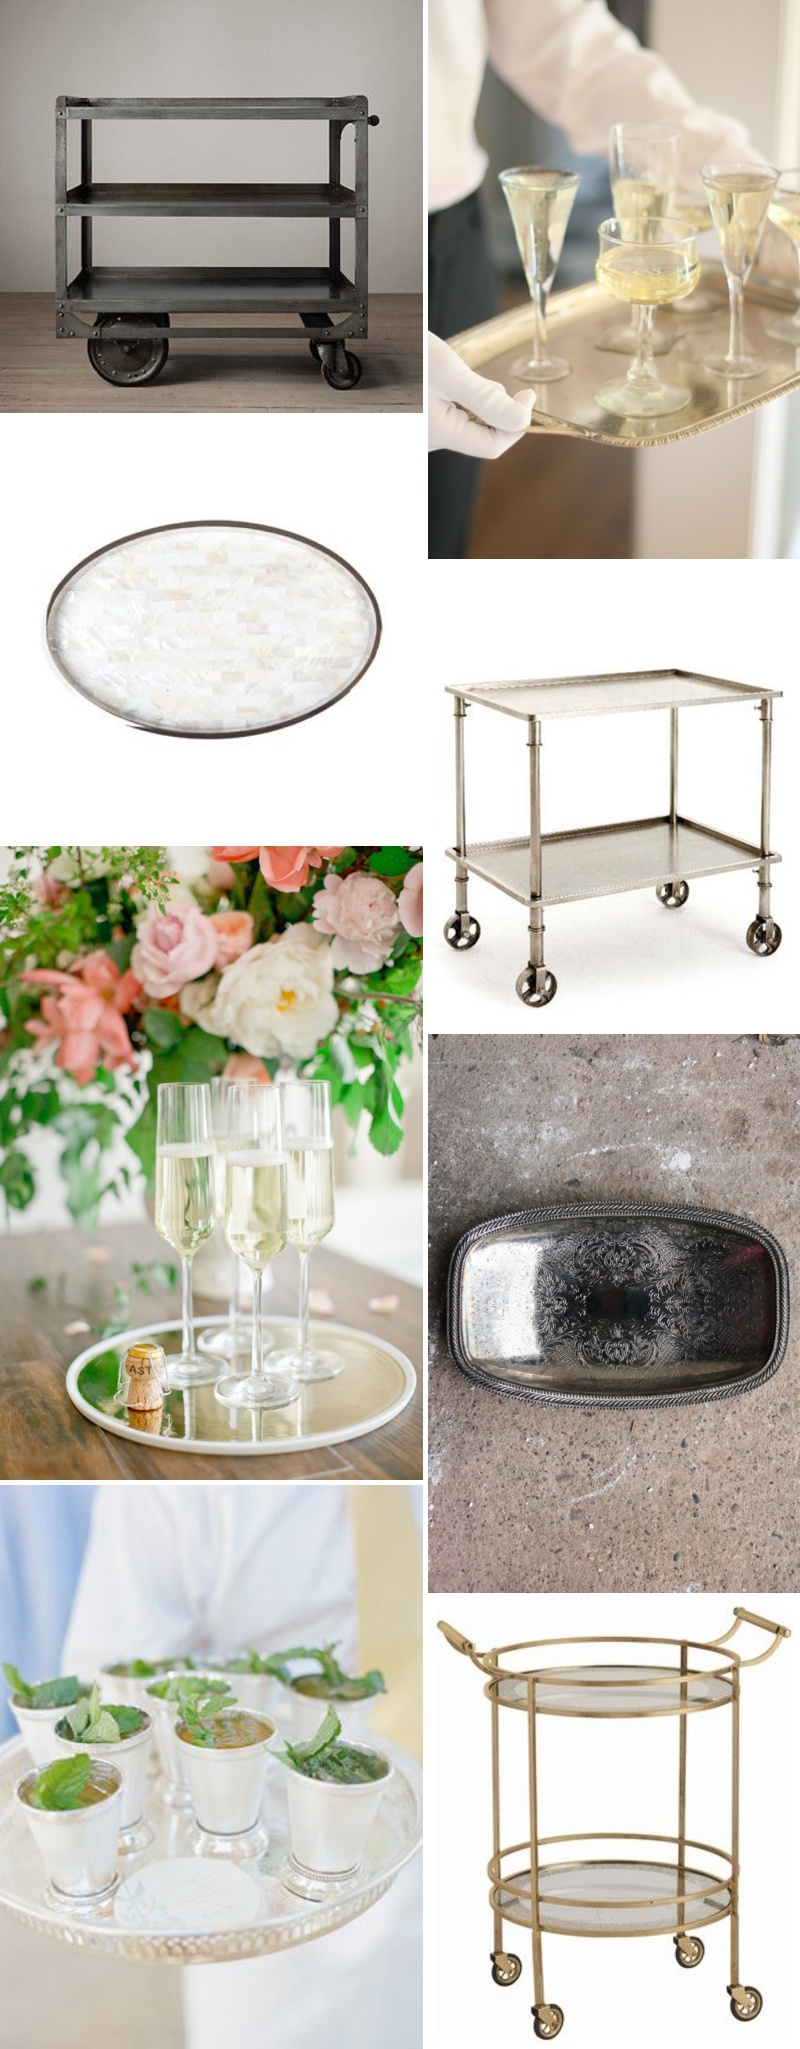 An idea packed inspiration post showing you how to make a glamorous and chic bar cart for your home and wedding_0001